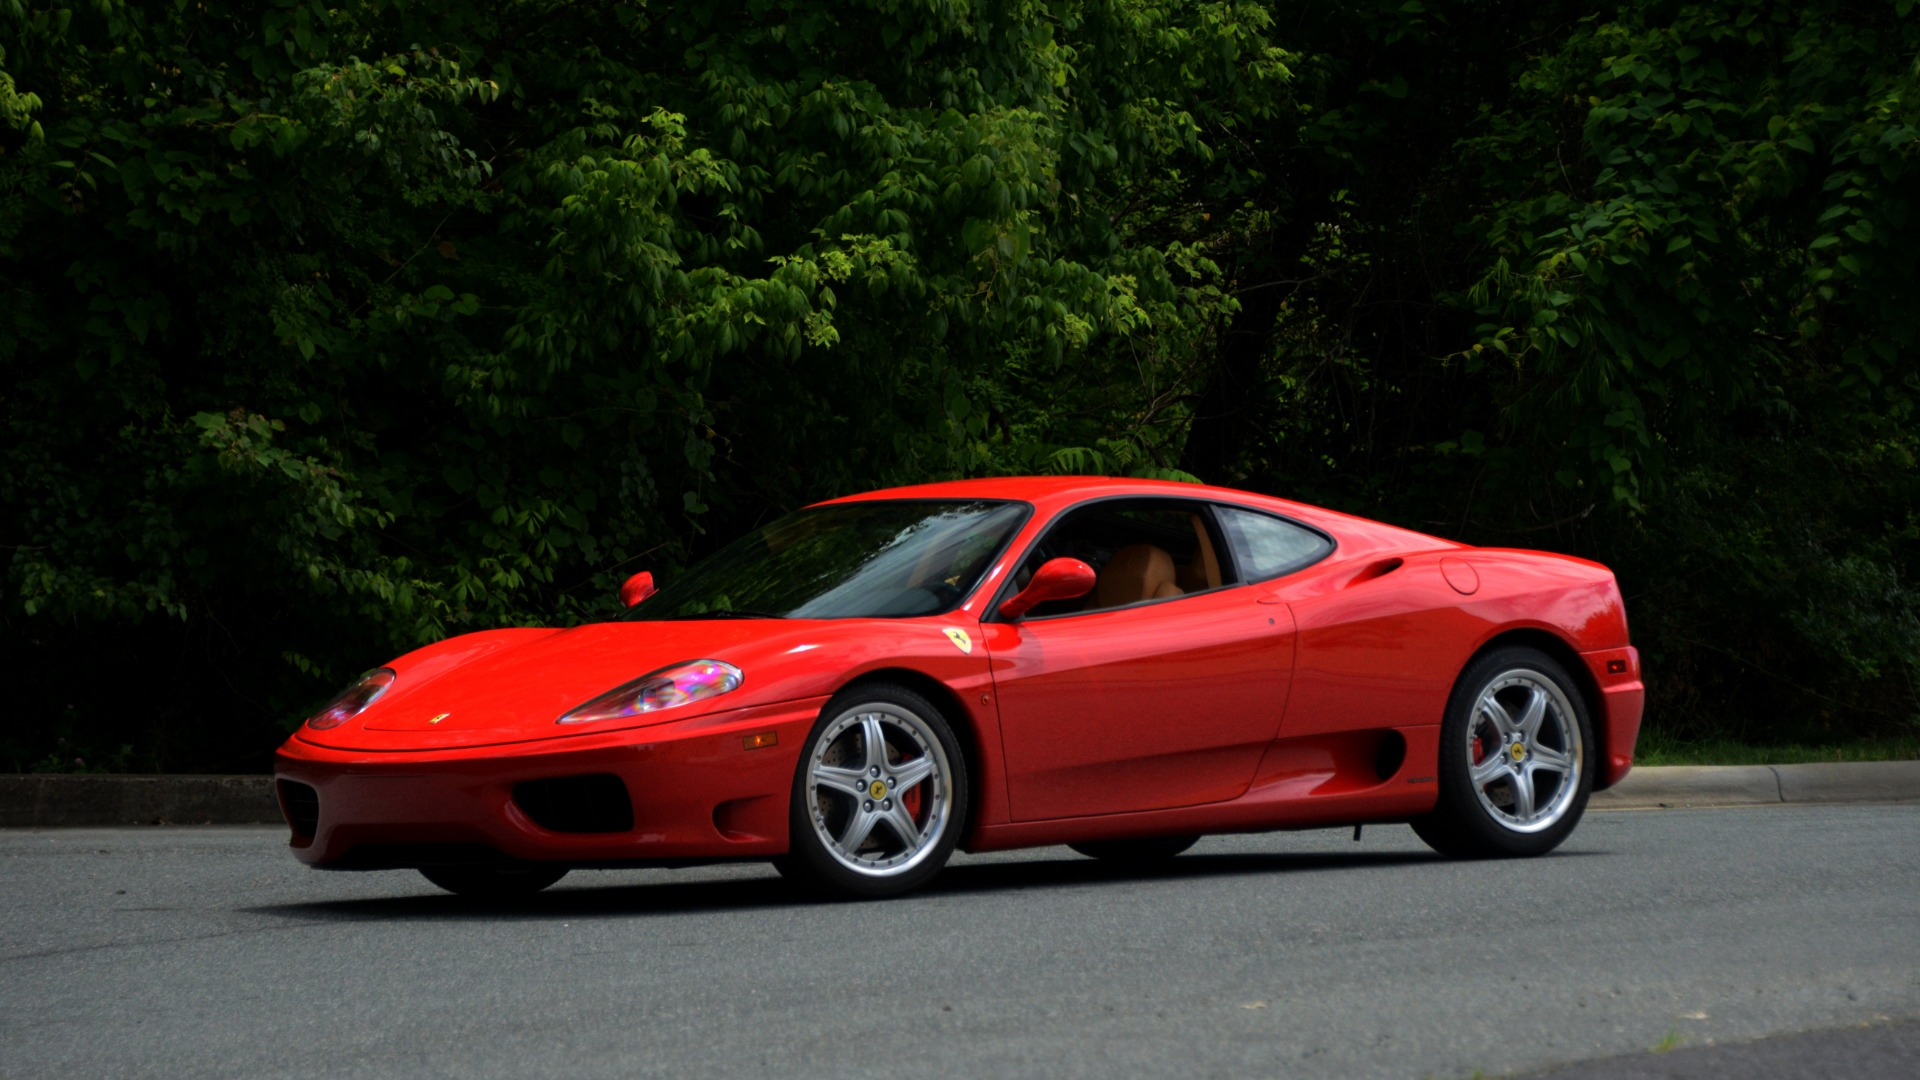 Used 2004 Ferrari 360 MODENA COUPE / GATED 6-SPD MANUAL / SUNROOF / LOW MILES for sale Sold at Formula Imports in Charlotte NC 28227 12